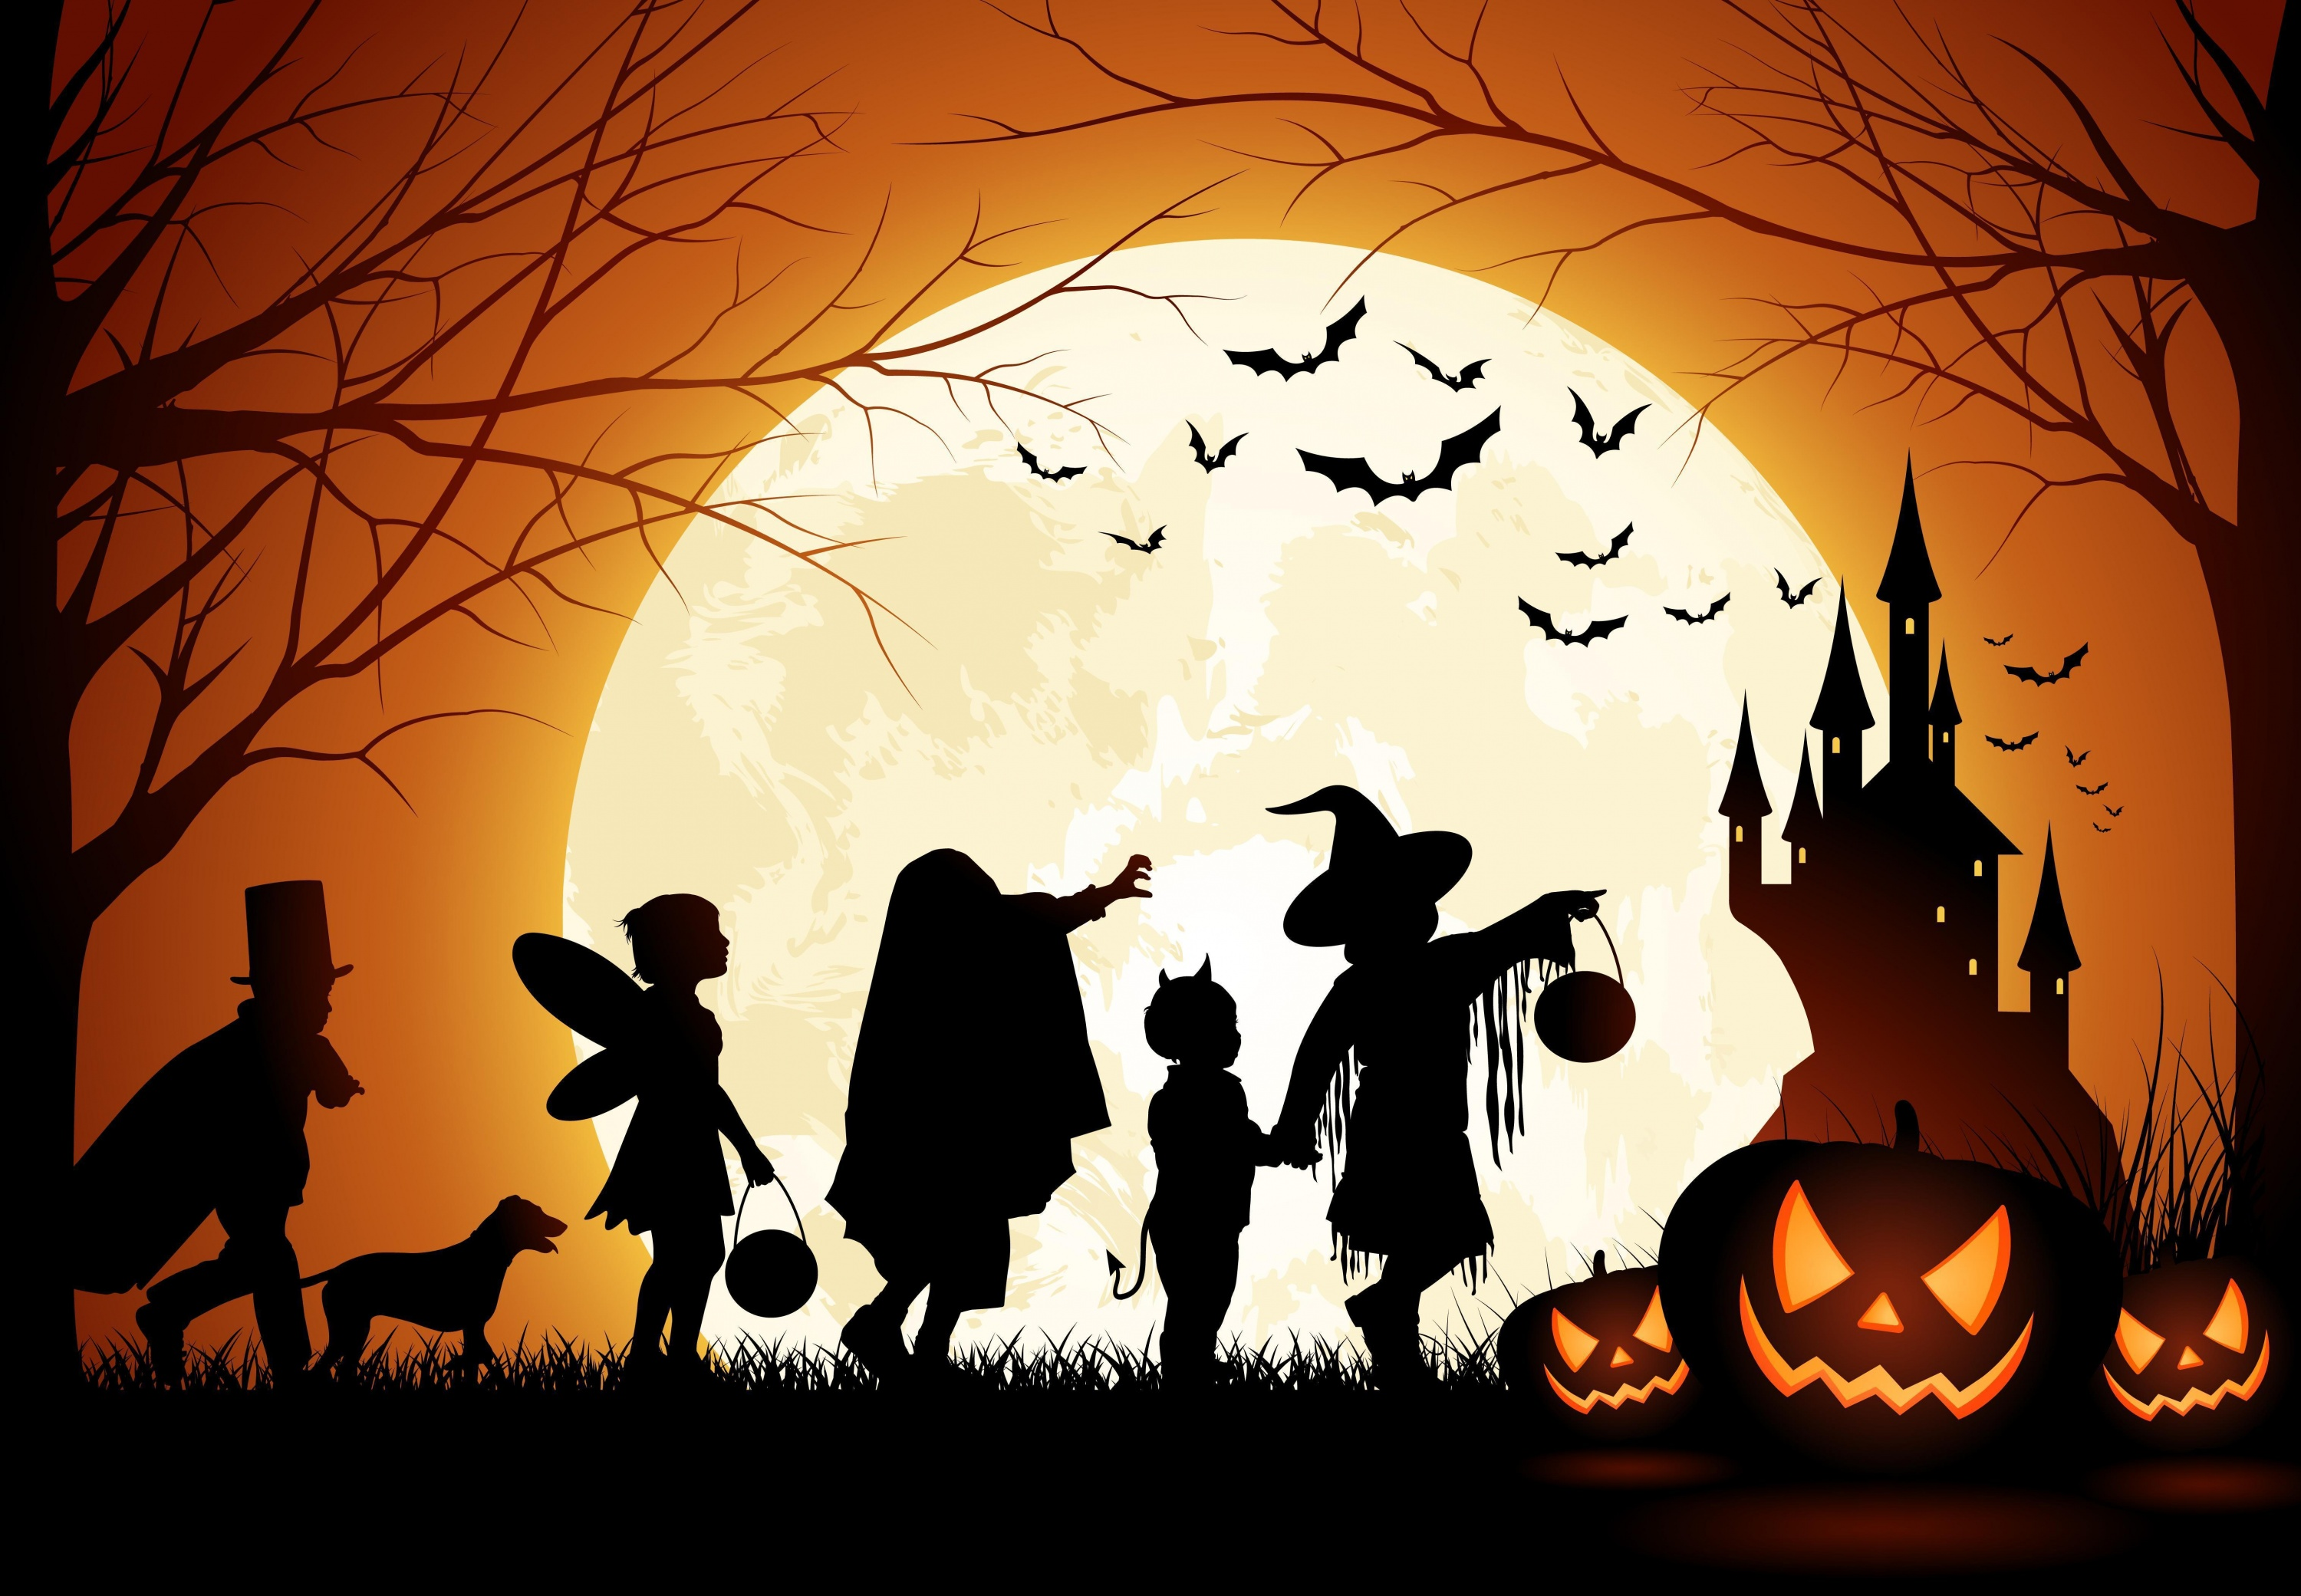 Holidays___Halloween_The_characters_of_the_celebration_of_Halloween_083812_.jpg